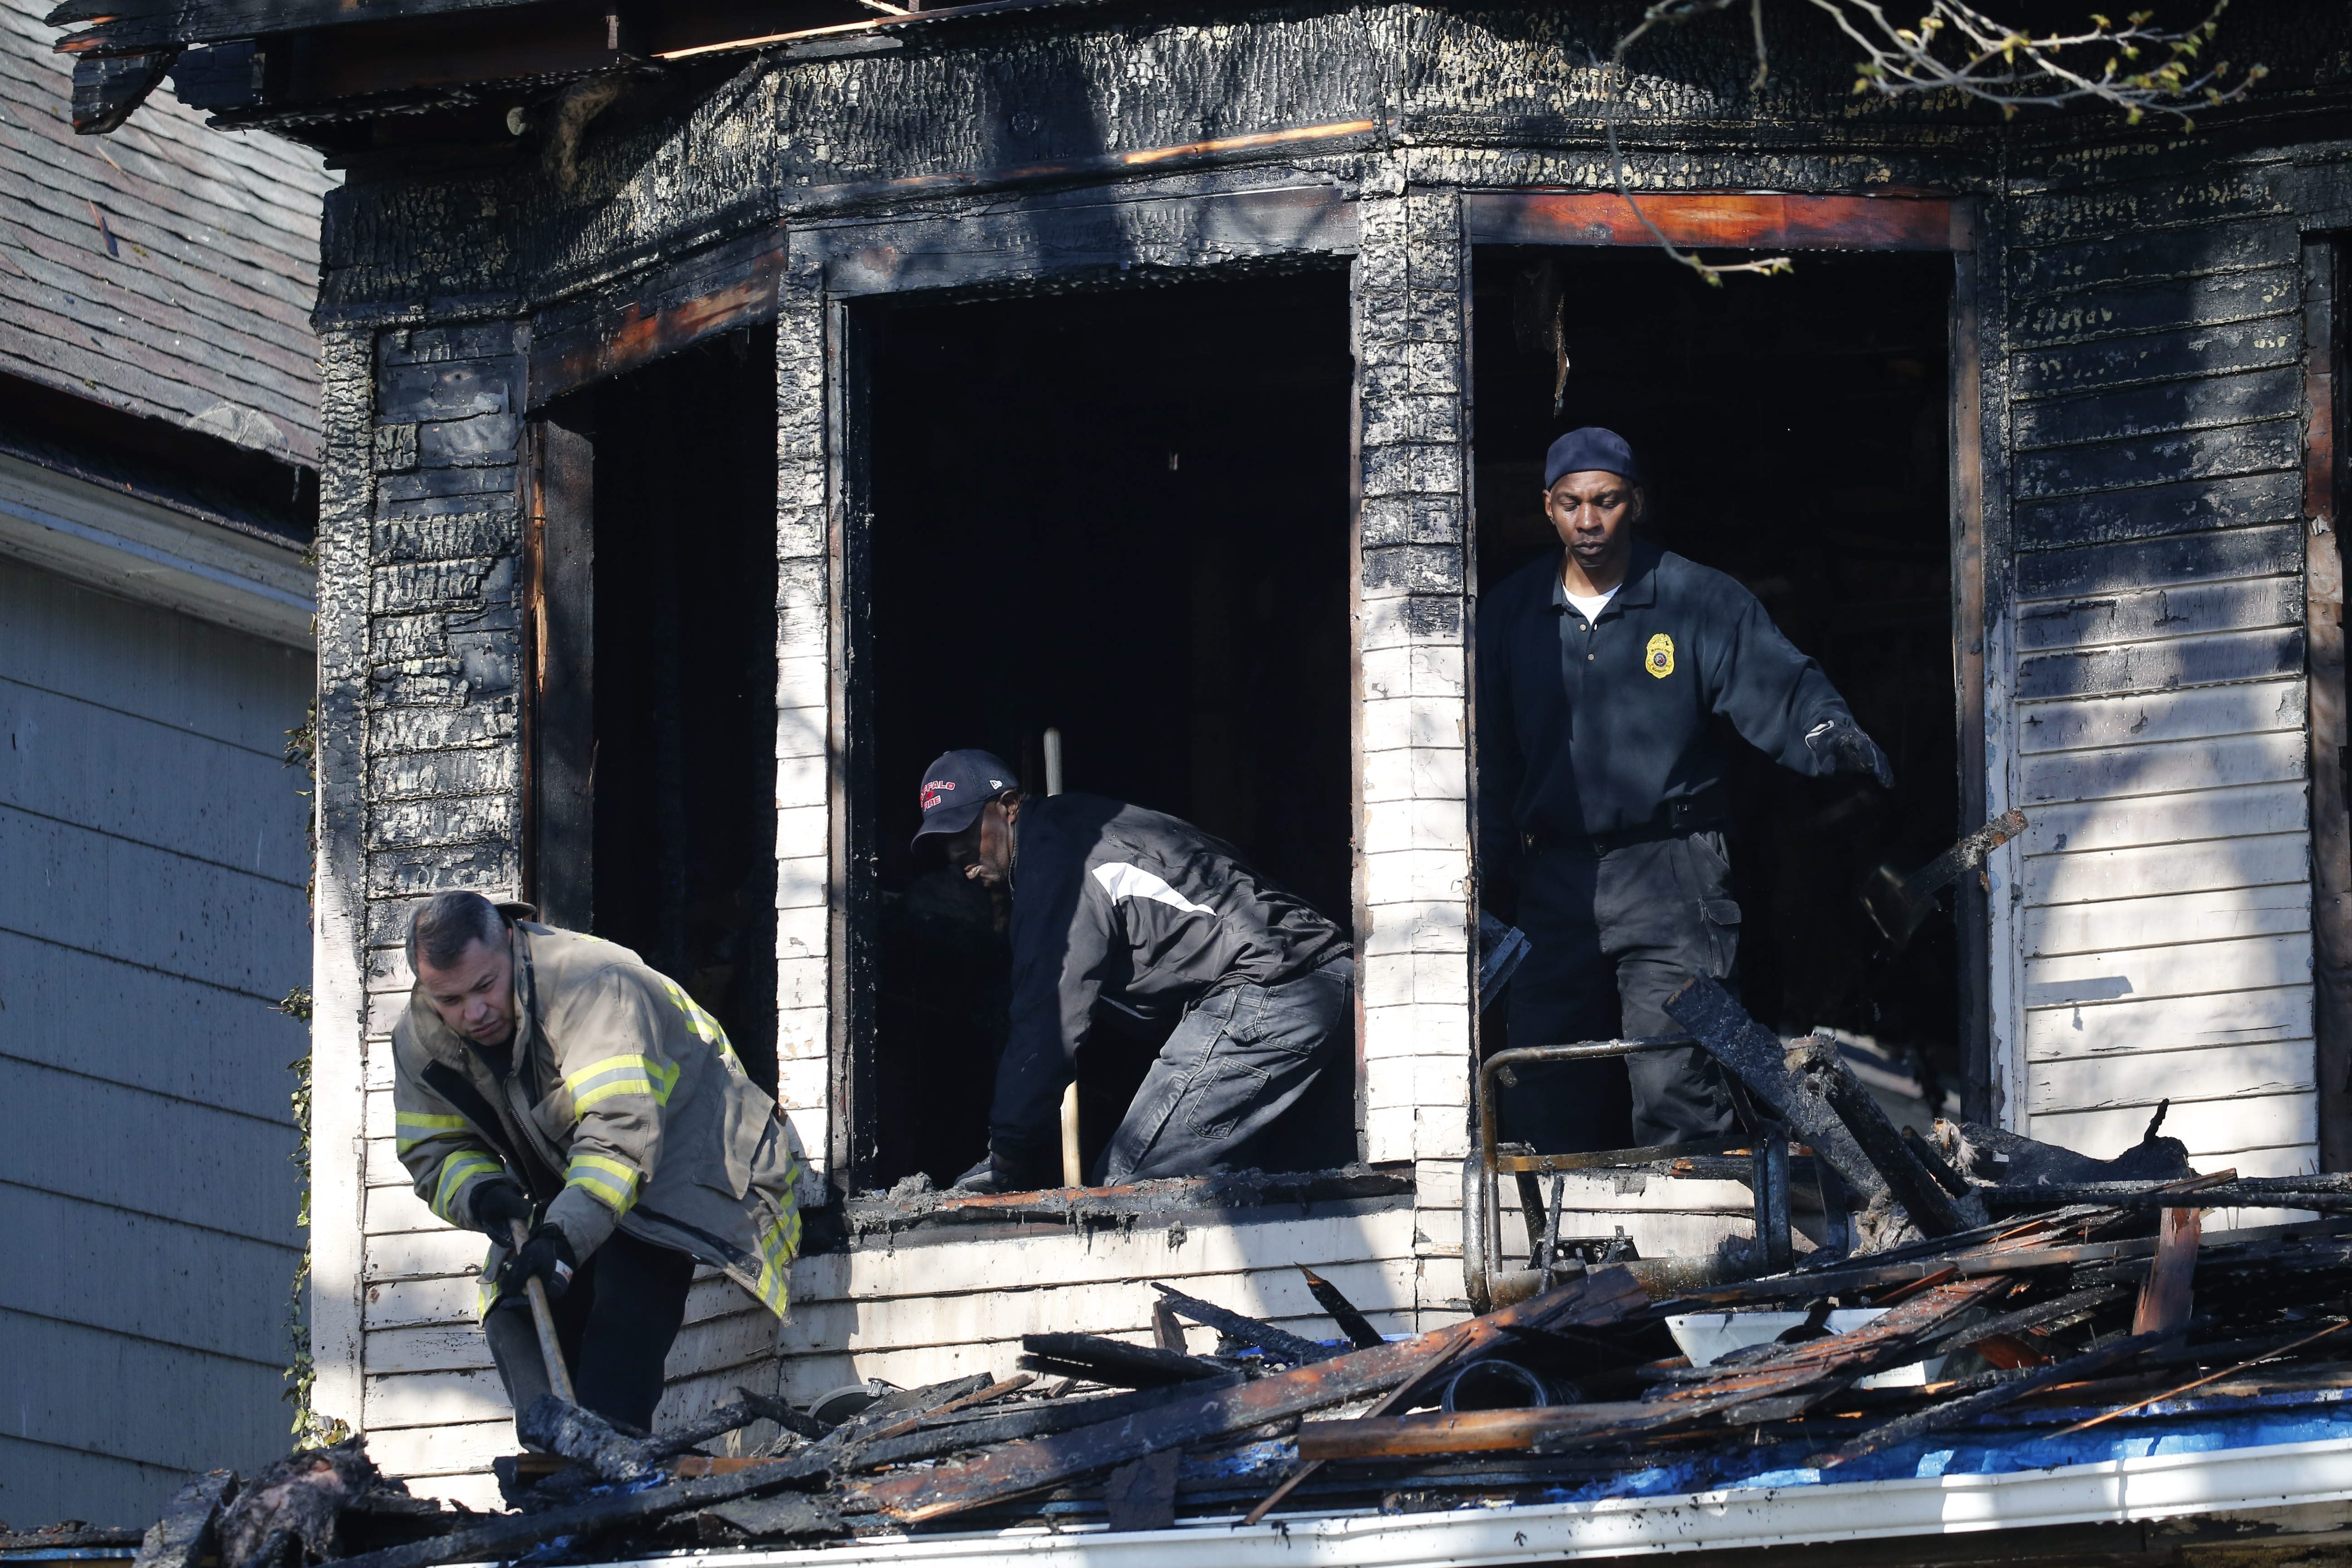 Buffalo fire marshals sift through the rubble of a home on Moselle Street where firefighters rescued a woman earlier Friday. (Derek Gee/Buffalo News)